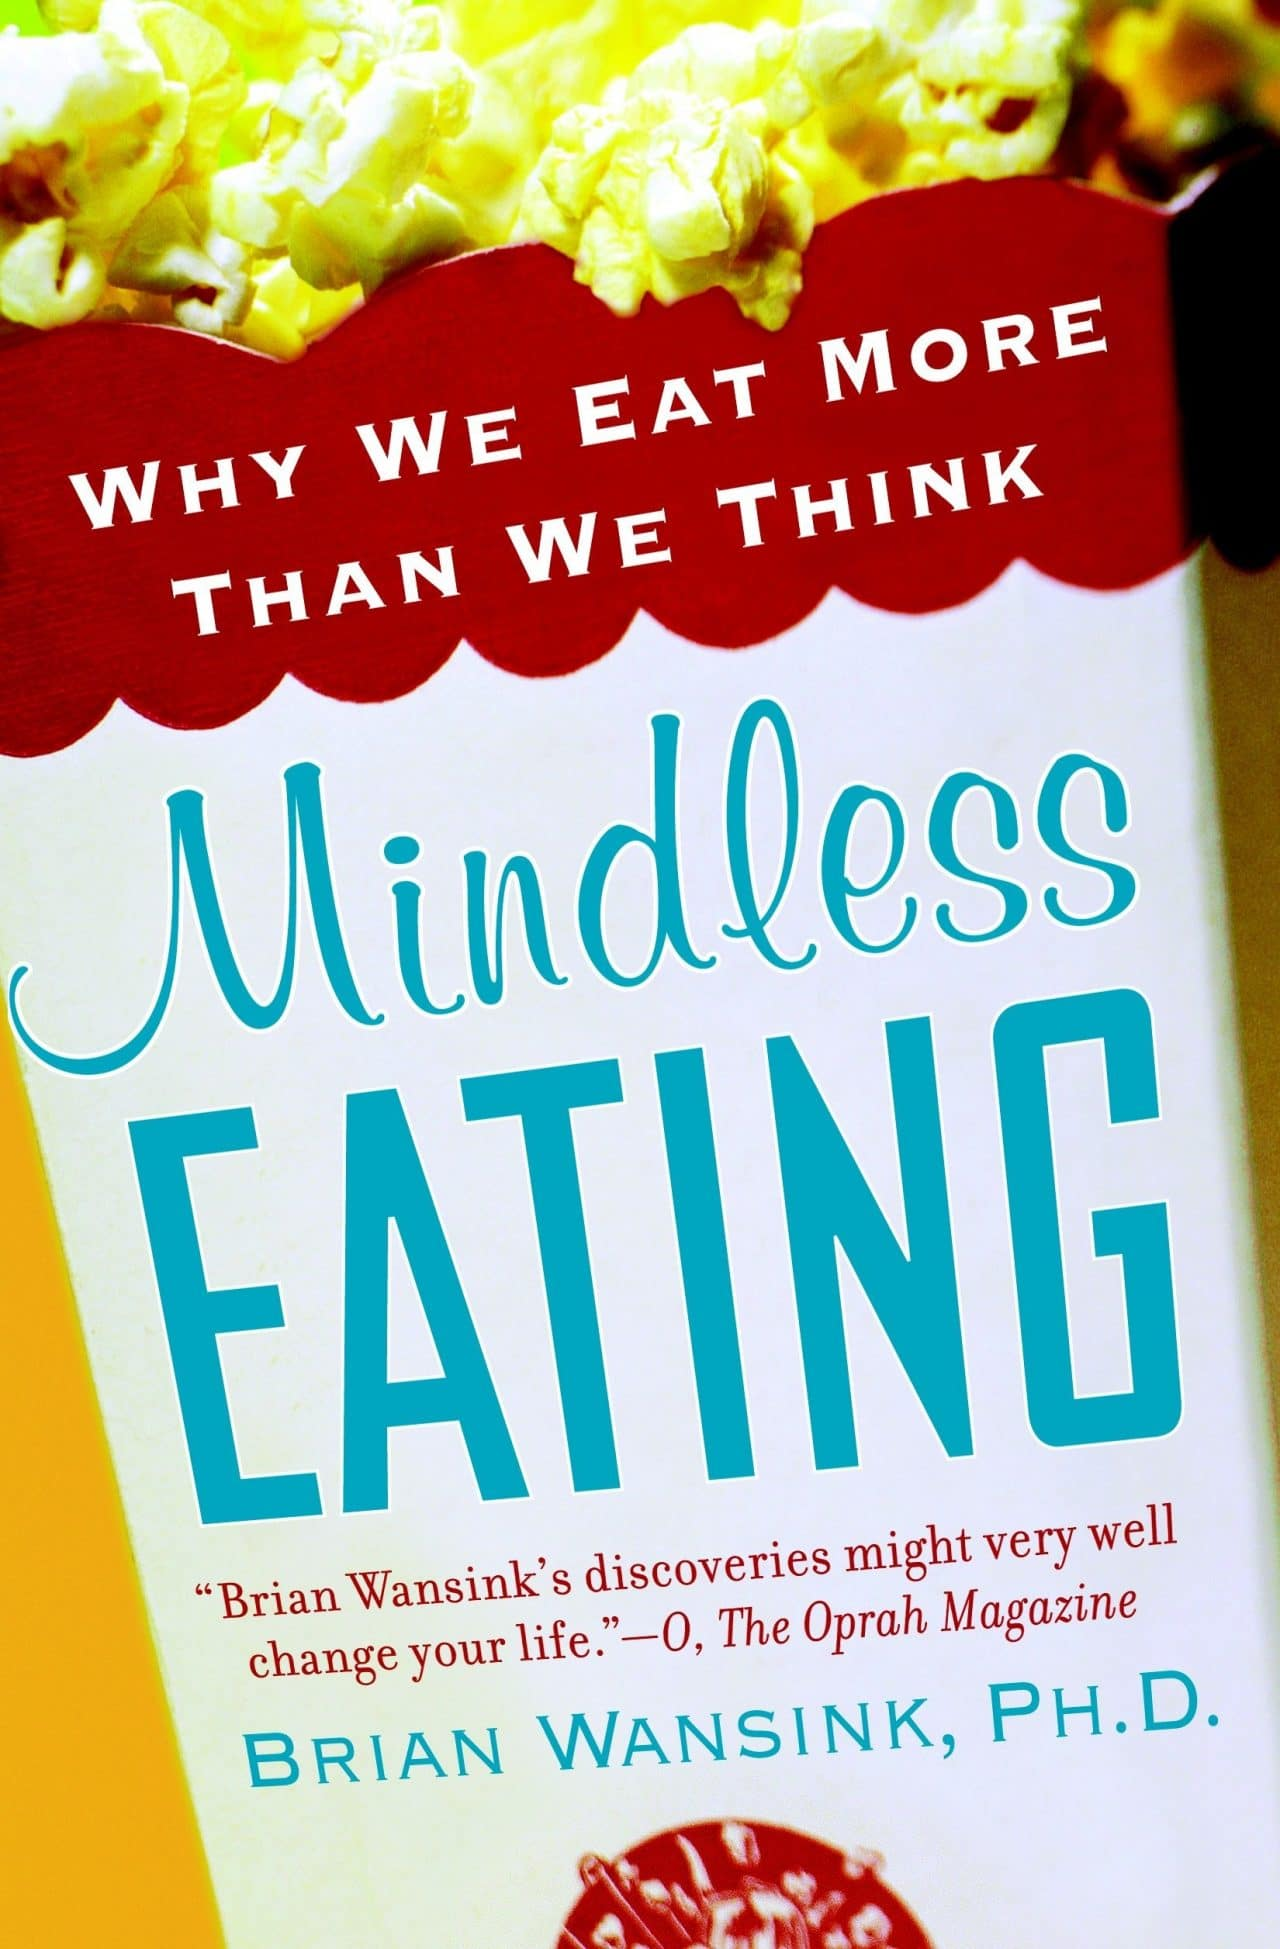 Mindfulness Eating. Why We Eat More Hank We Think